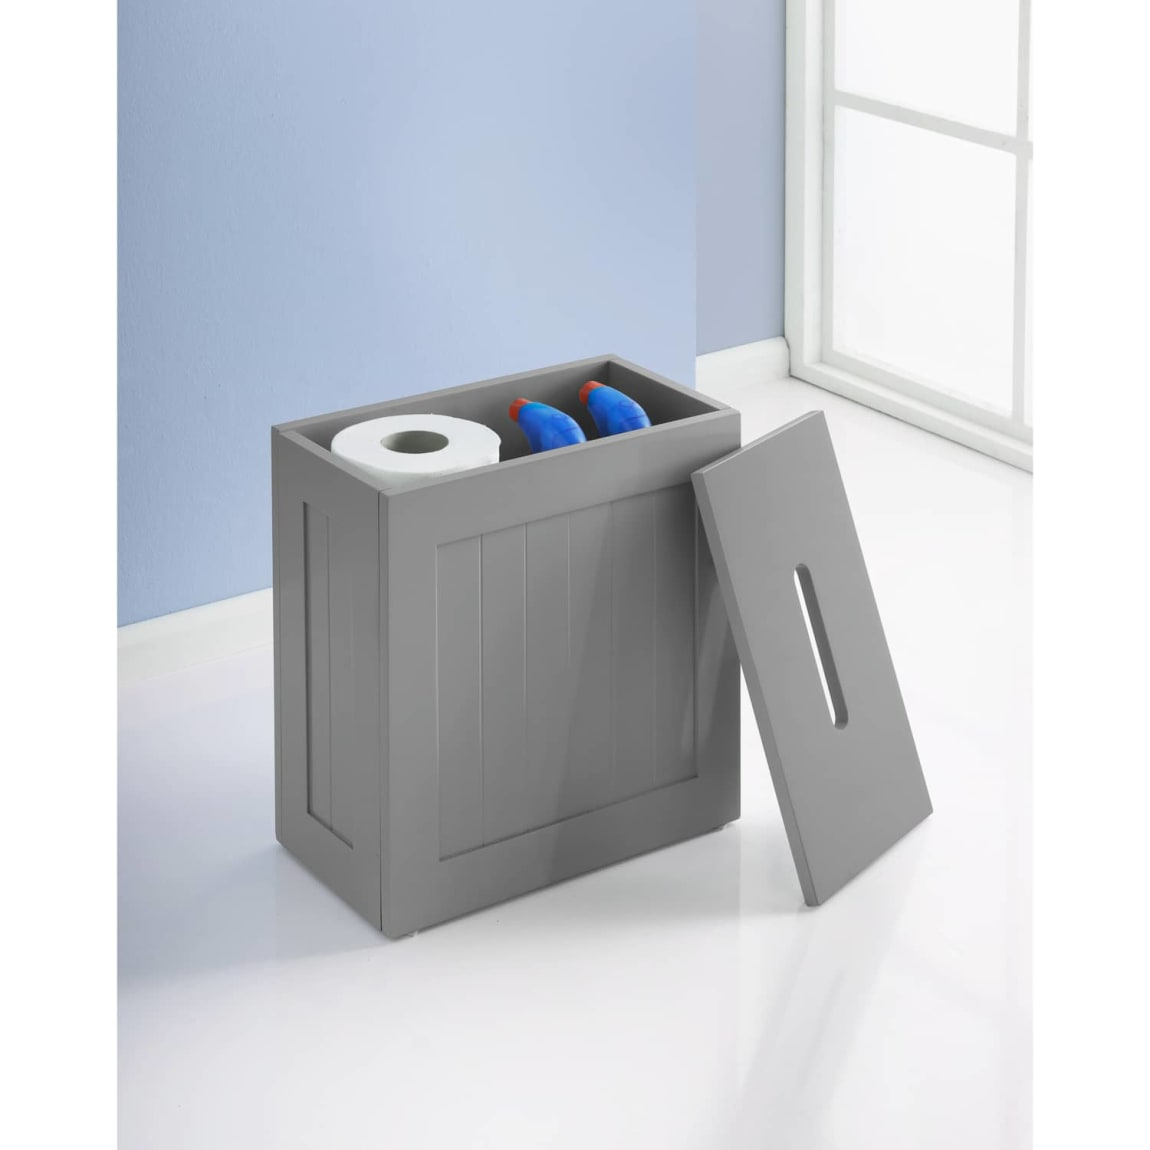 Maine Bathroom Storage Unit - Grey